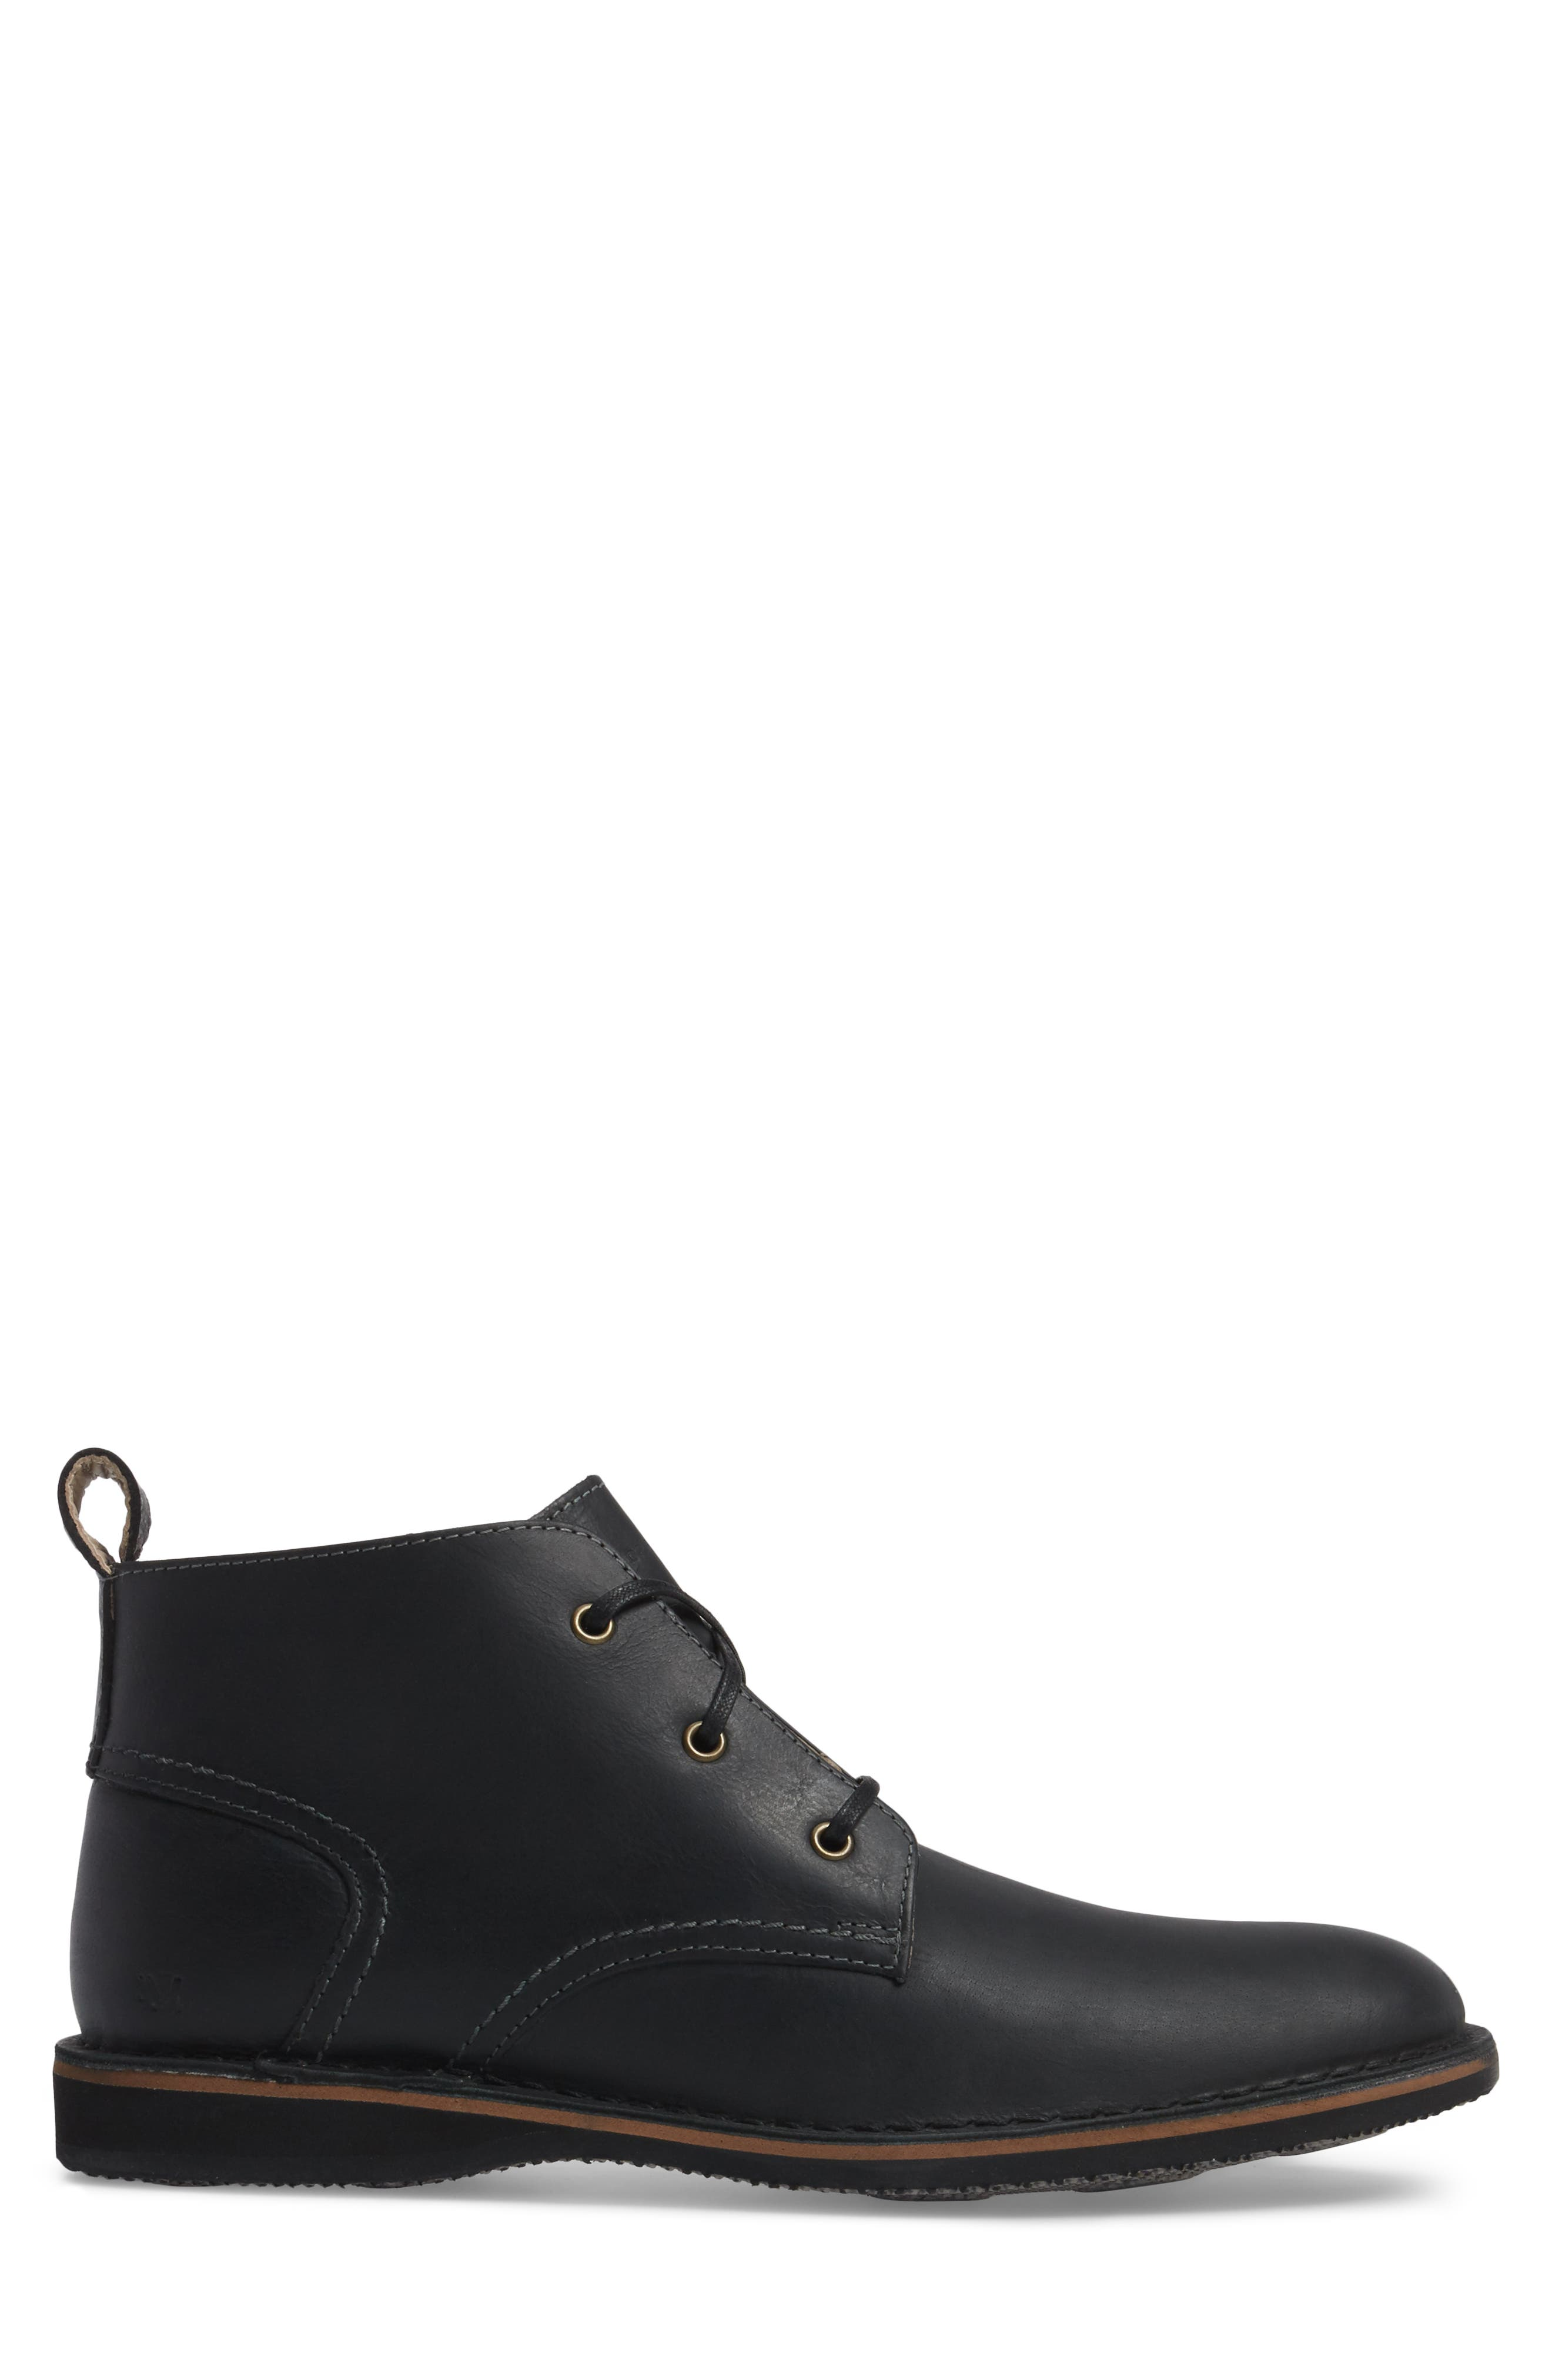 Dorchester Chukka Boot,                             Alternate thumbnail 3, color,                             Black Leather